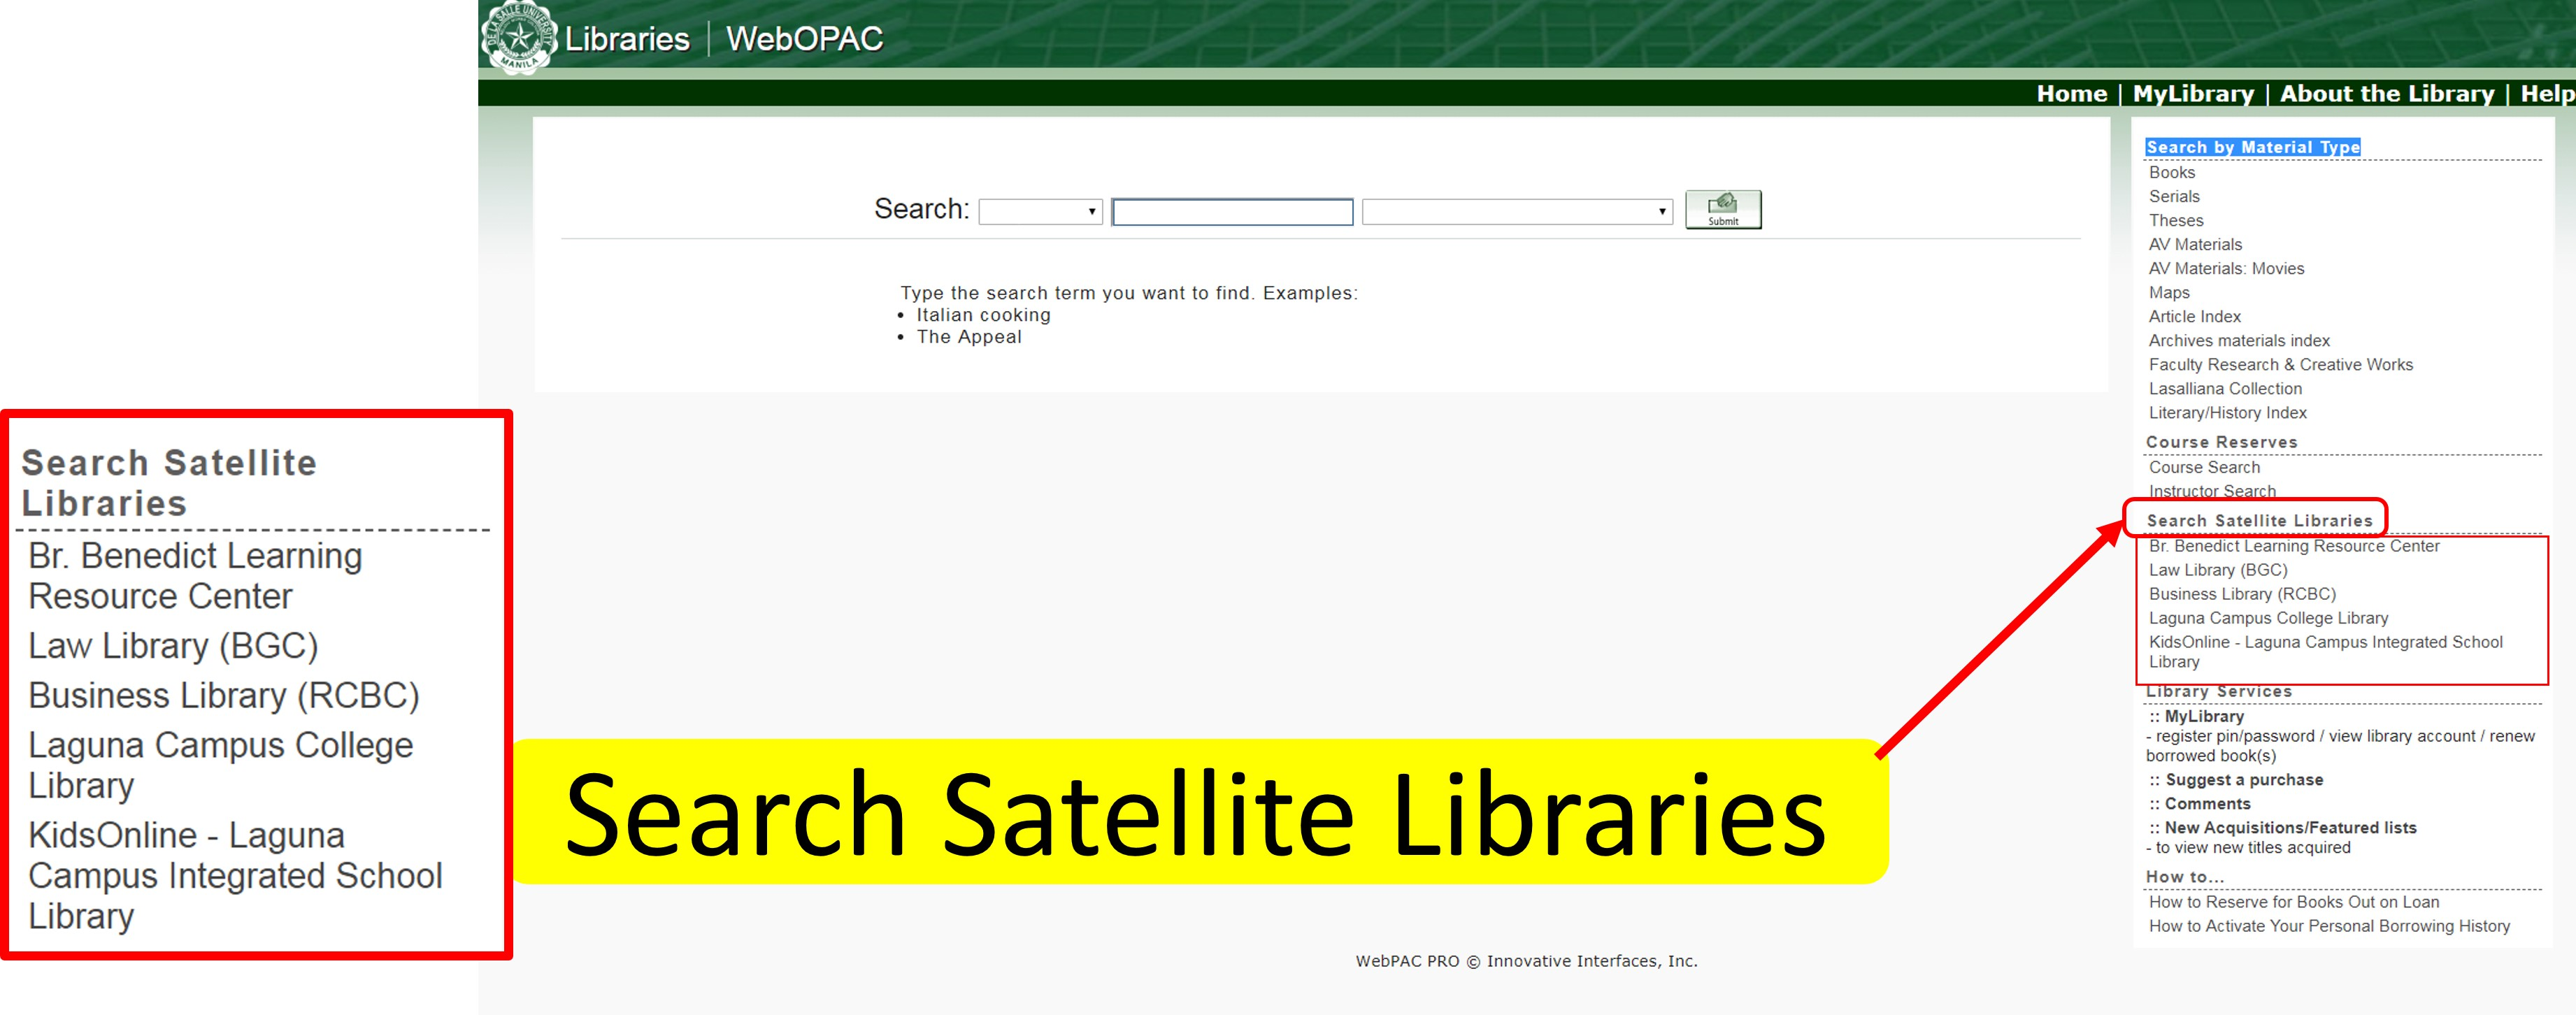 How to filter results using WebOPAC: Search Satellite Libraries